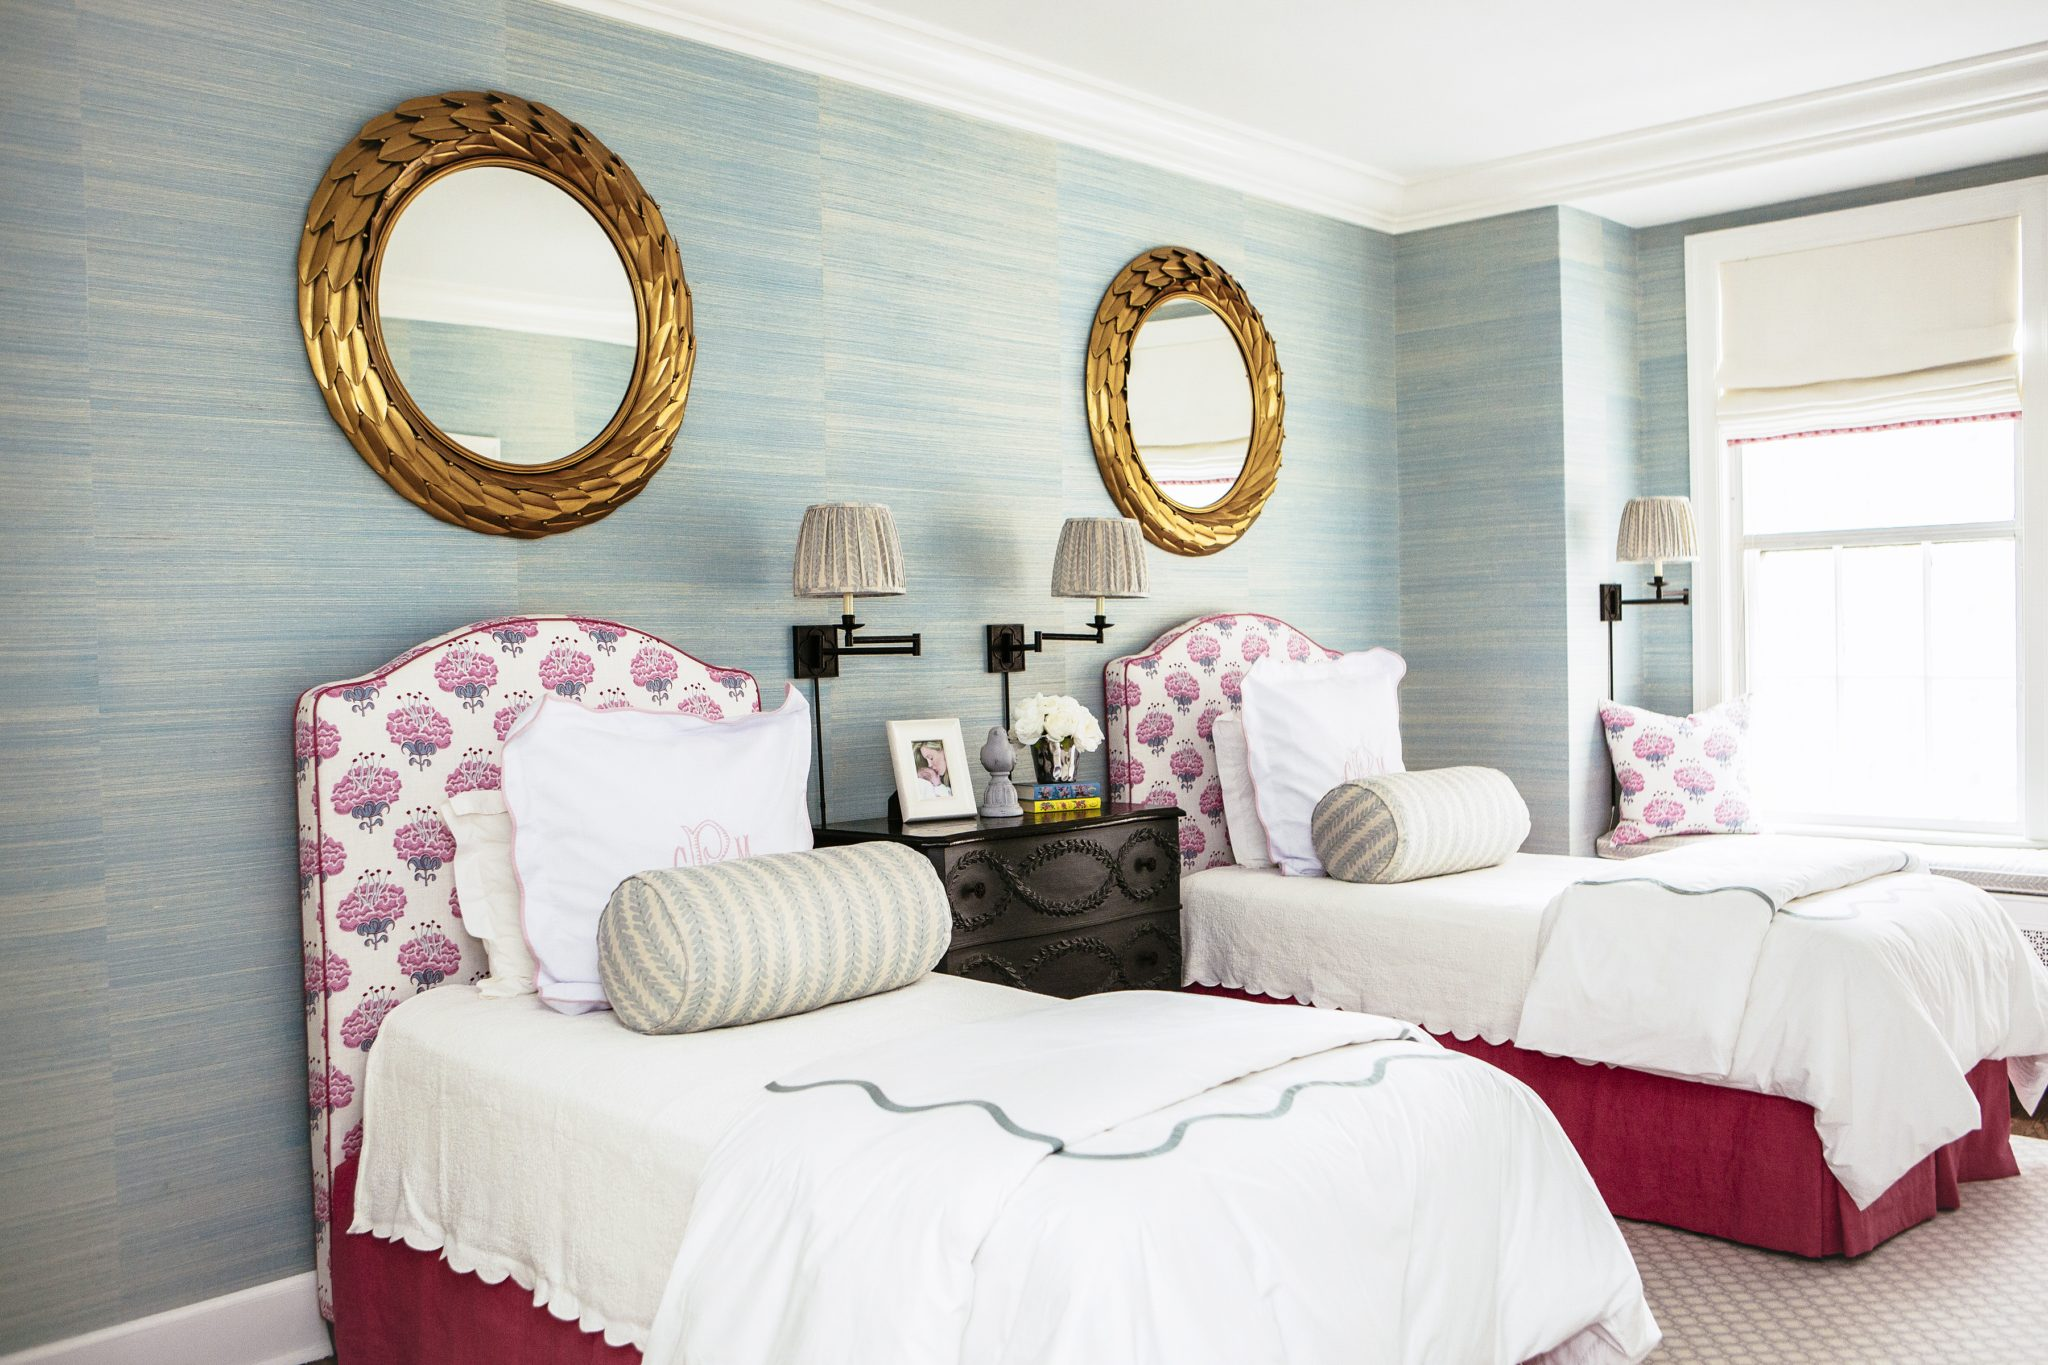 Sophisticated Girl's Room with Blue Grasscloth Wallpaper by M and M Interior Design